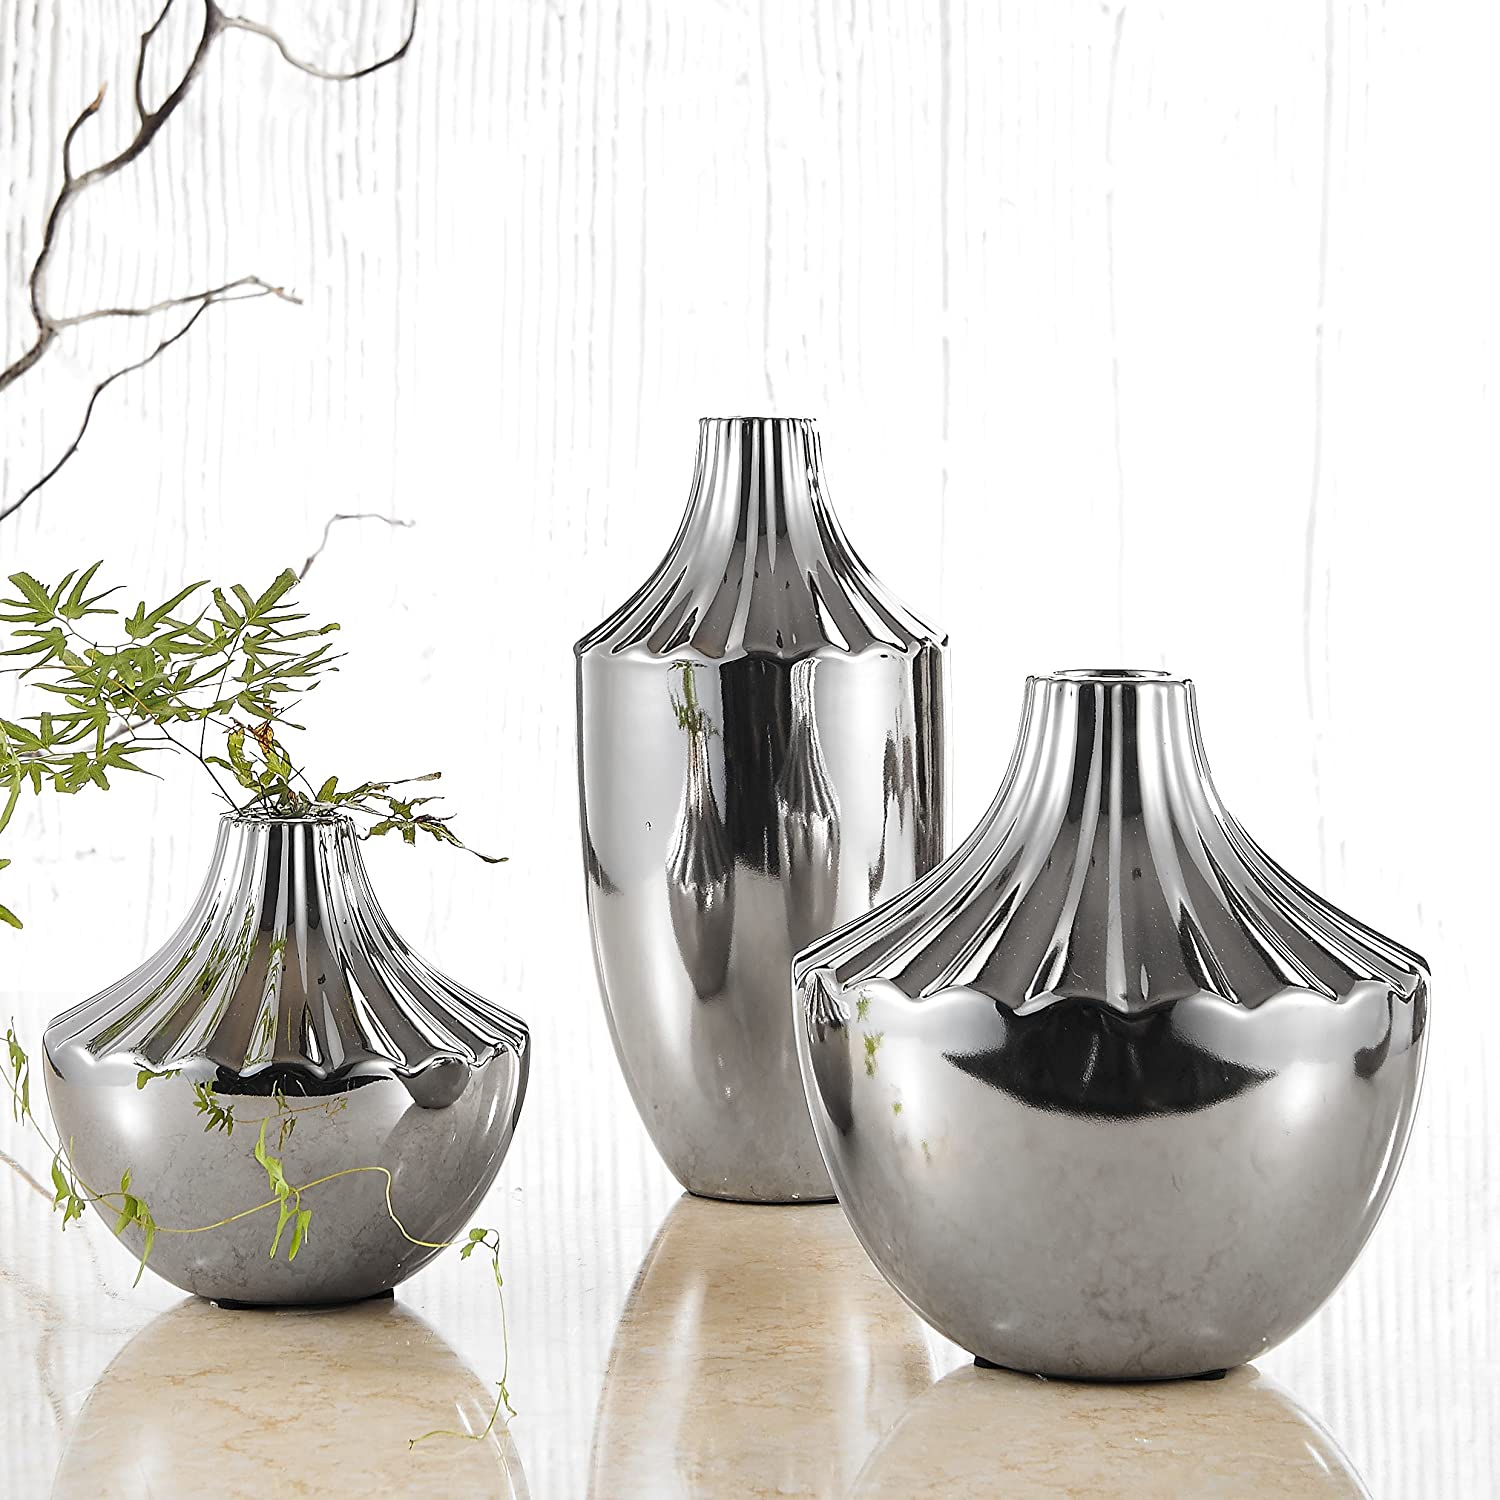 electroplated polished chrome silver ceramic decoration flower vase set of 3 ebay. Black Bedroom Furniture Sets. Home Design Ideas